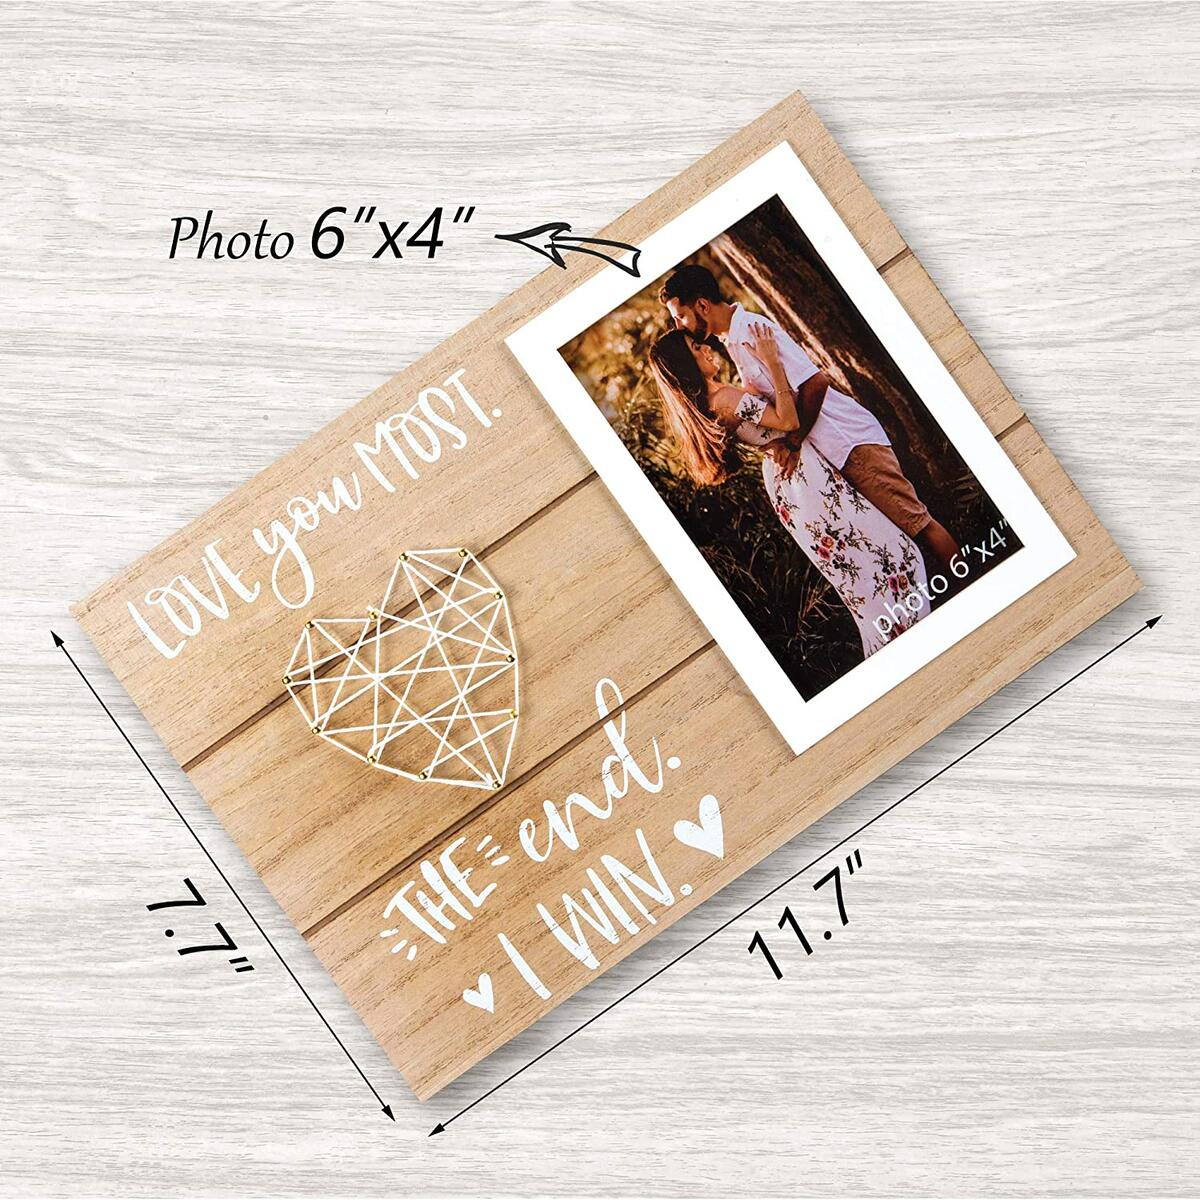 Boyfriend and Girlfriend Anniversary, Birthday, Romantic Couple Gift - Love You Most. The End. I Win. - Couples, Husband, Wife, or Fiance Romantic Love Picture Frame Gifts - 4x6 Inches Cute Photo